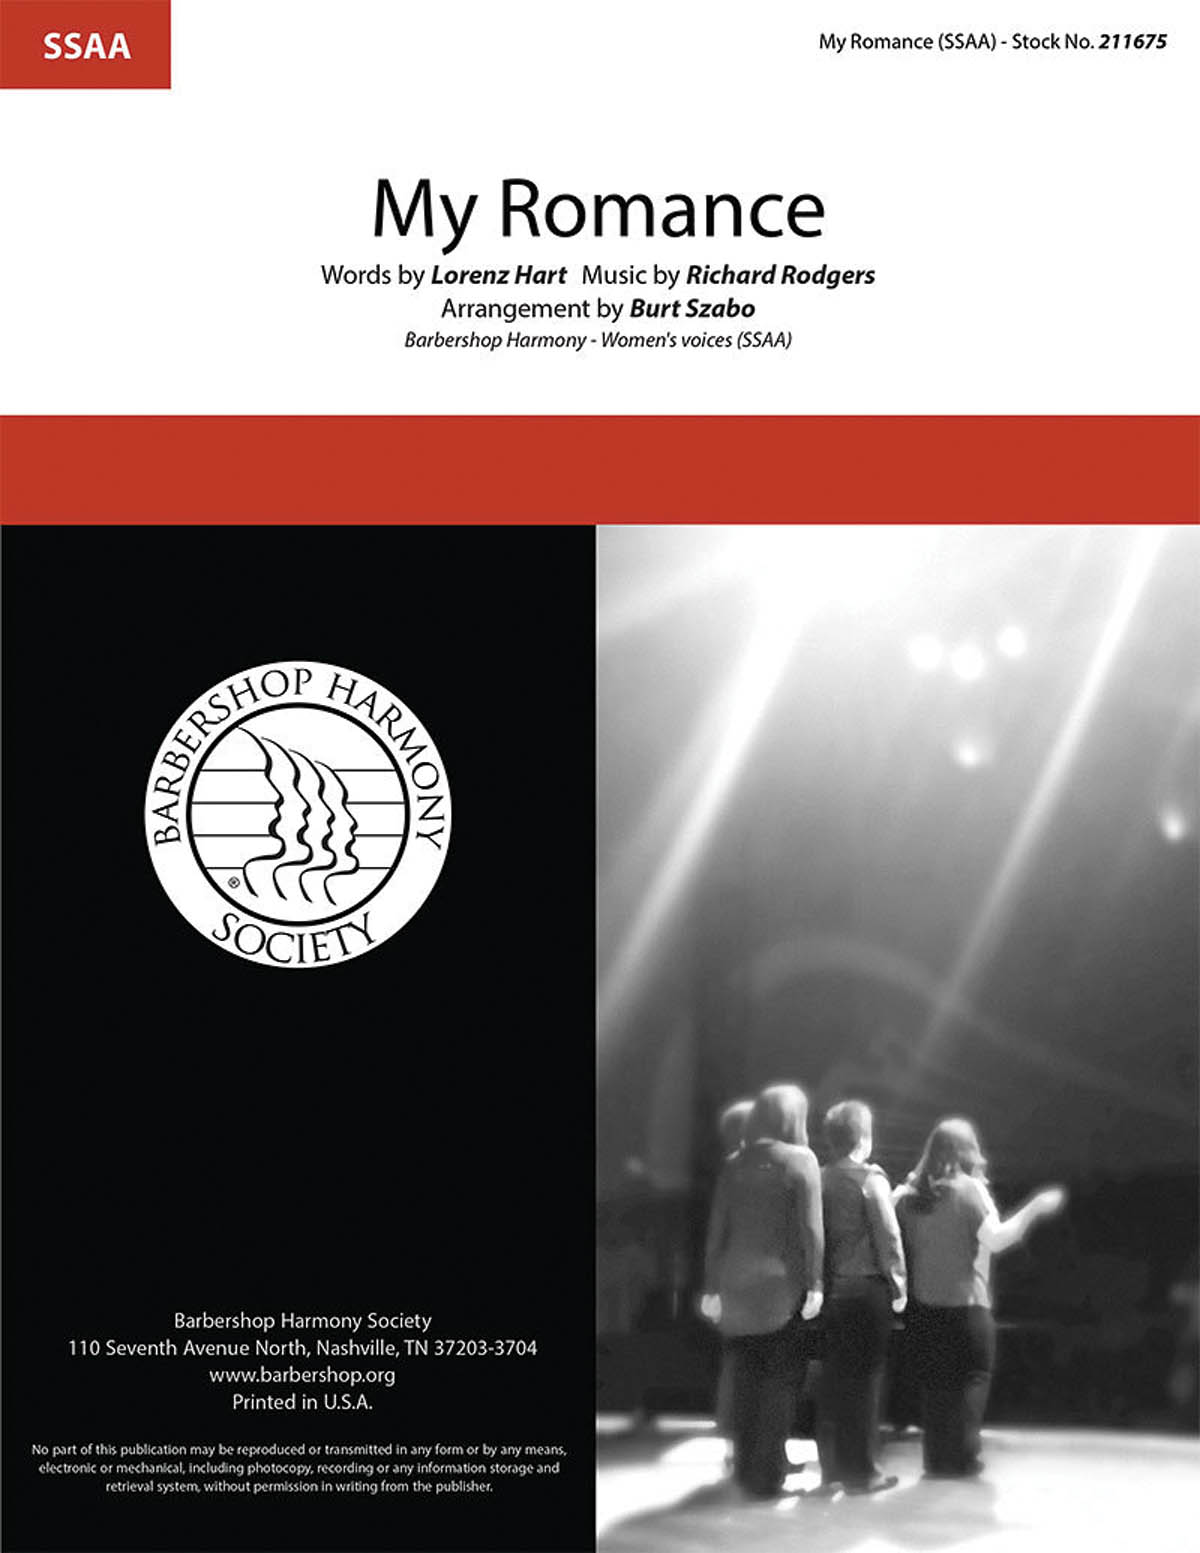 My Romance : SSAA : Burt Szabo : Richard Rodgers :  1 CD : 00251414 : 812817021518